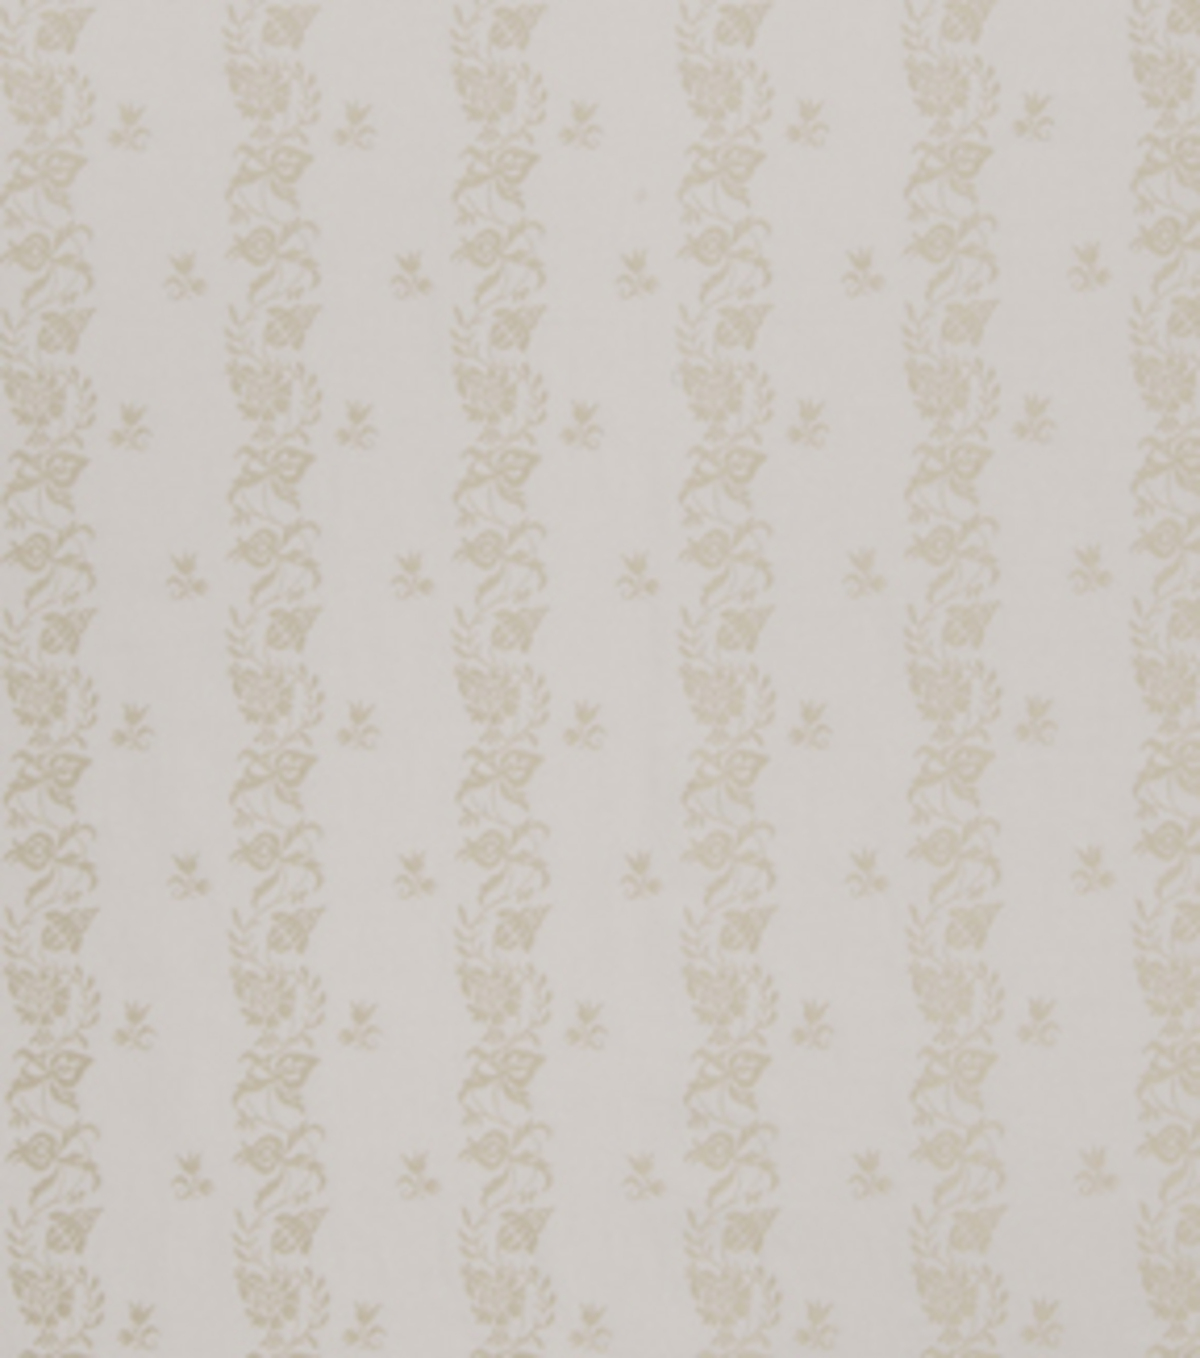 Home Decor 8\u0022x8\u0022 Fabric Swatch-French General  Curtis Parchment